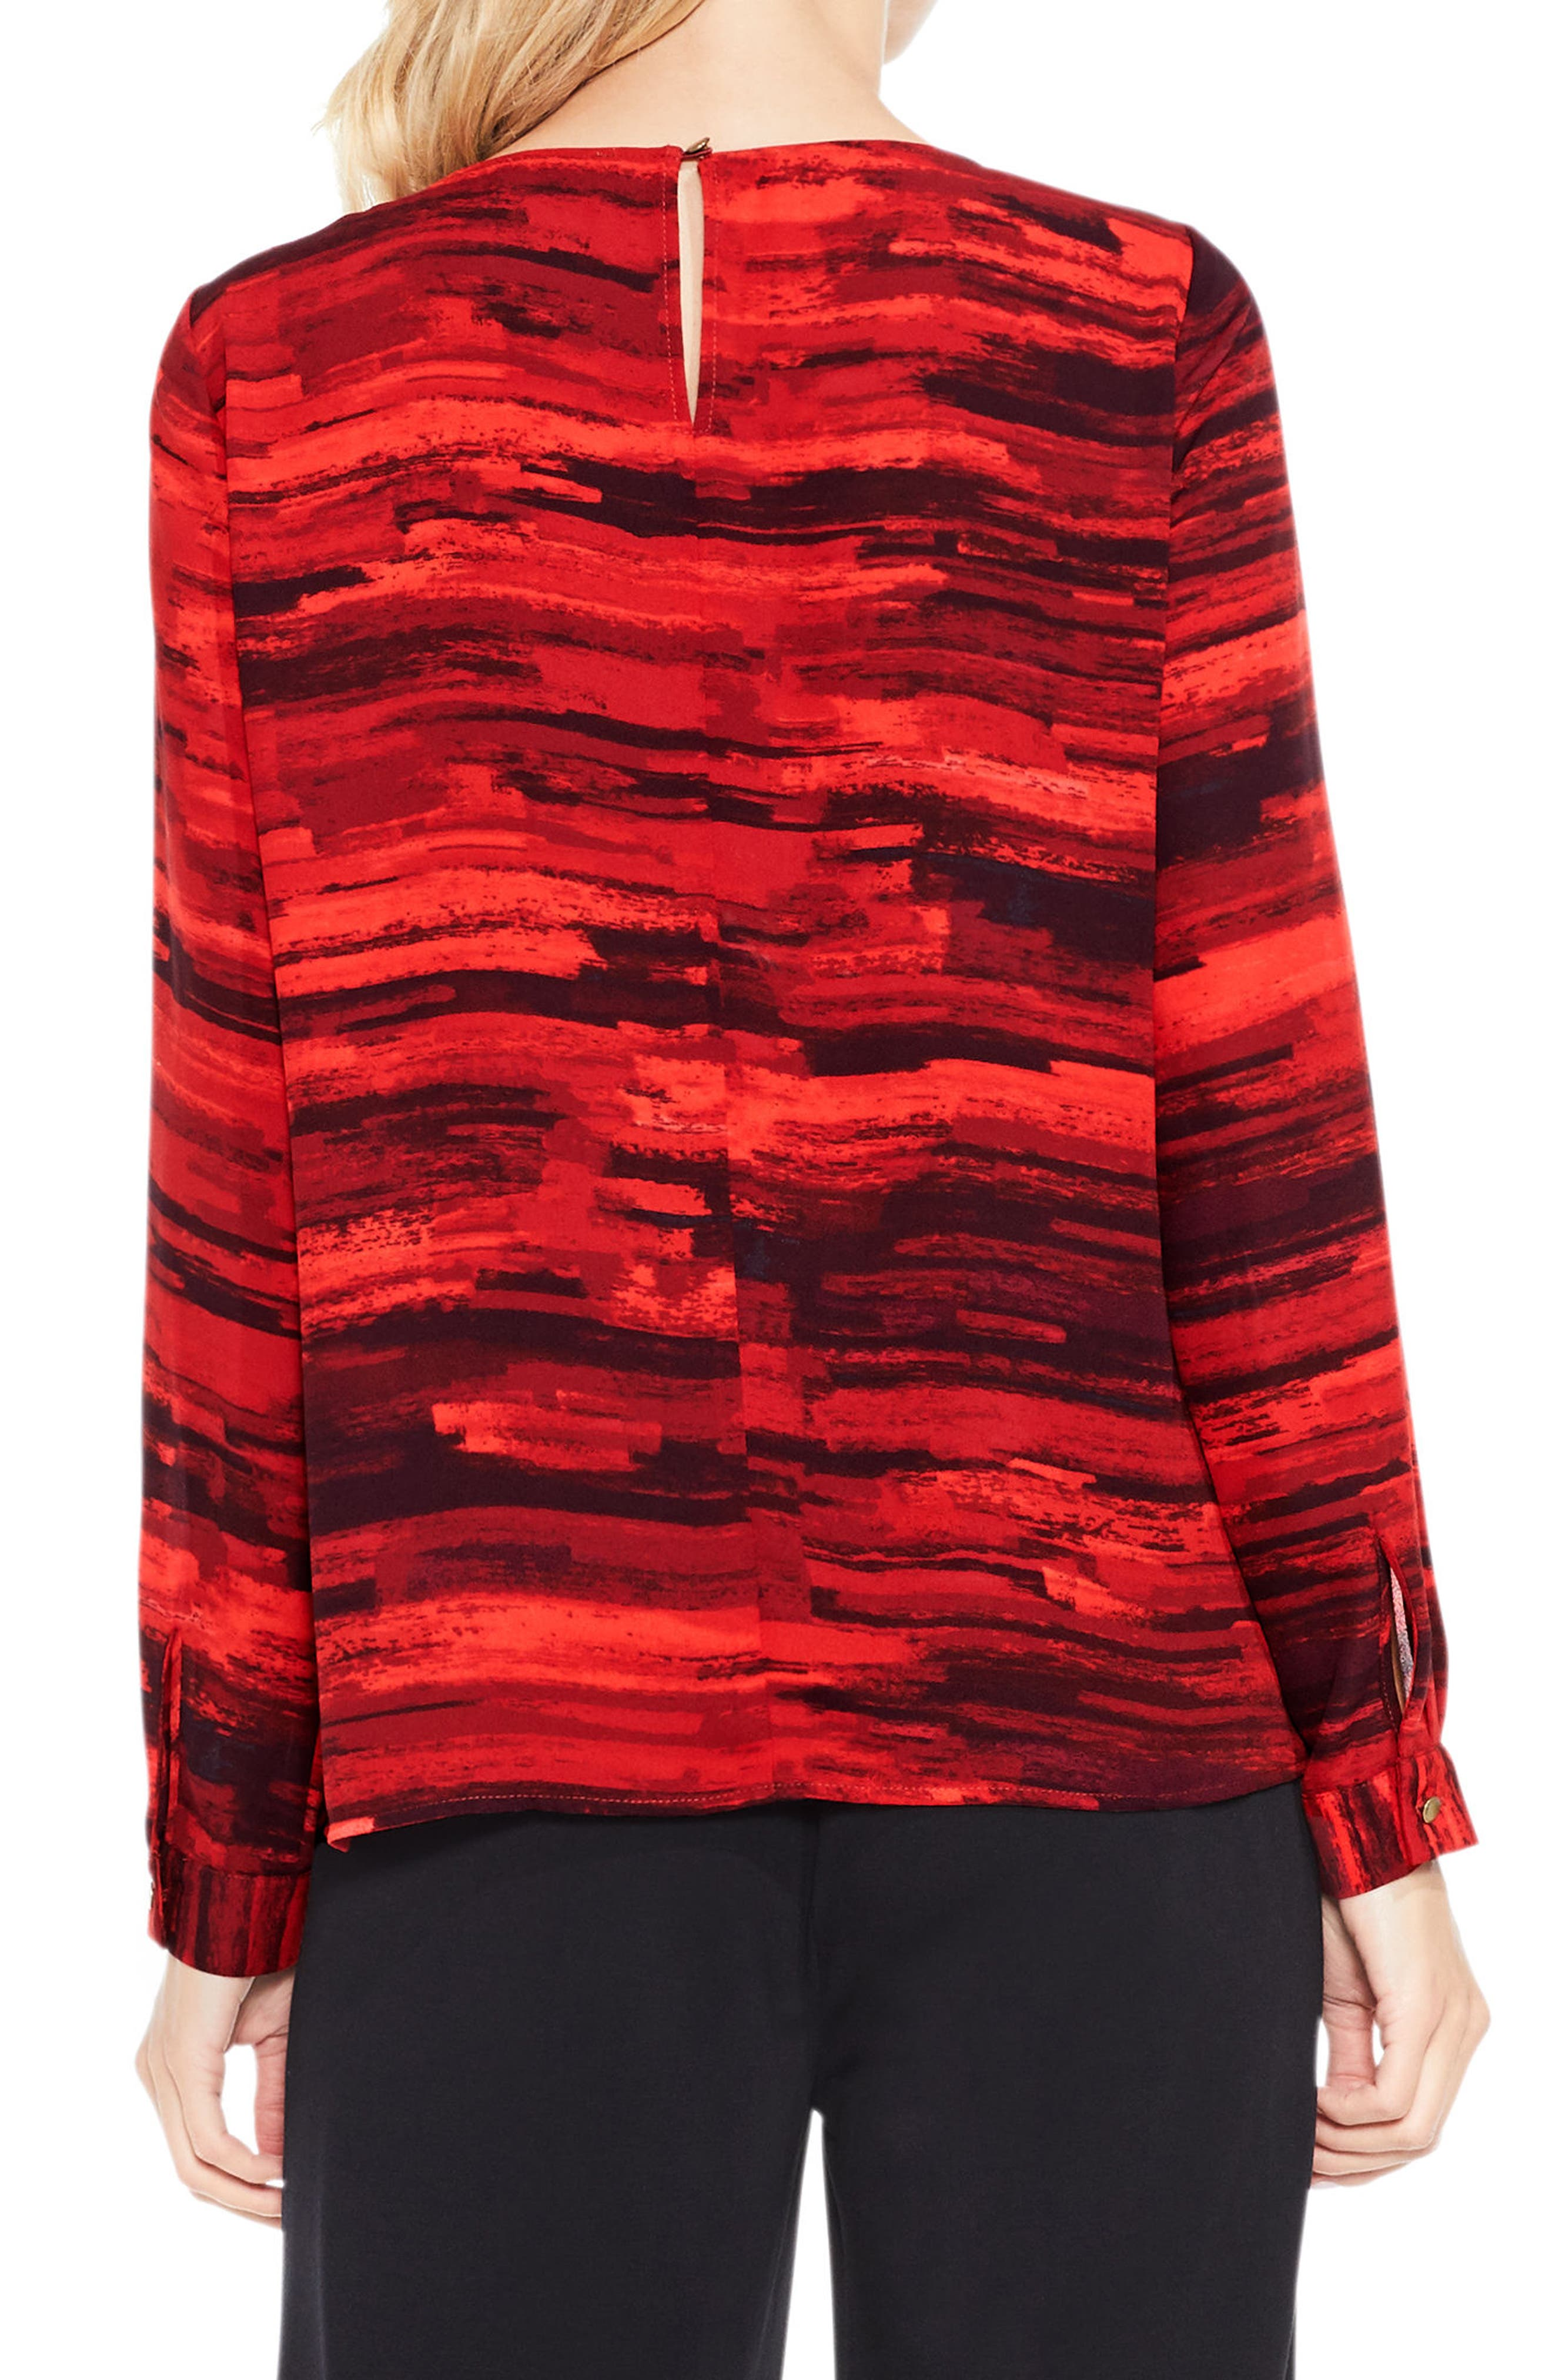 Alternate Image 2  - Vince Camuto Muses Print Tiered Blouse